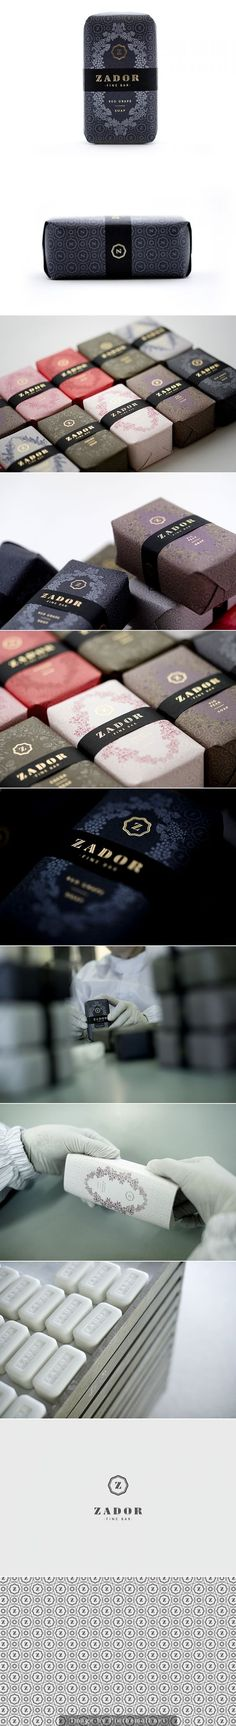 #packaging #branding #identity... - a grouped images picture - Pin Them All: